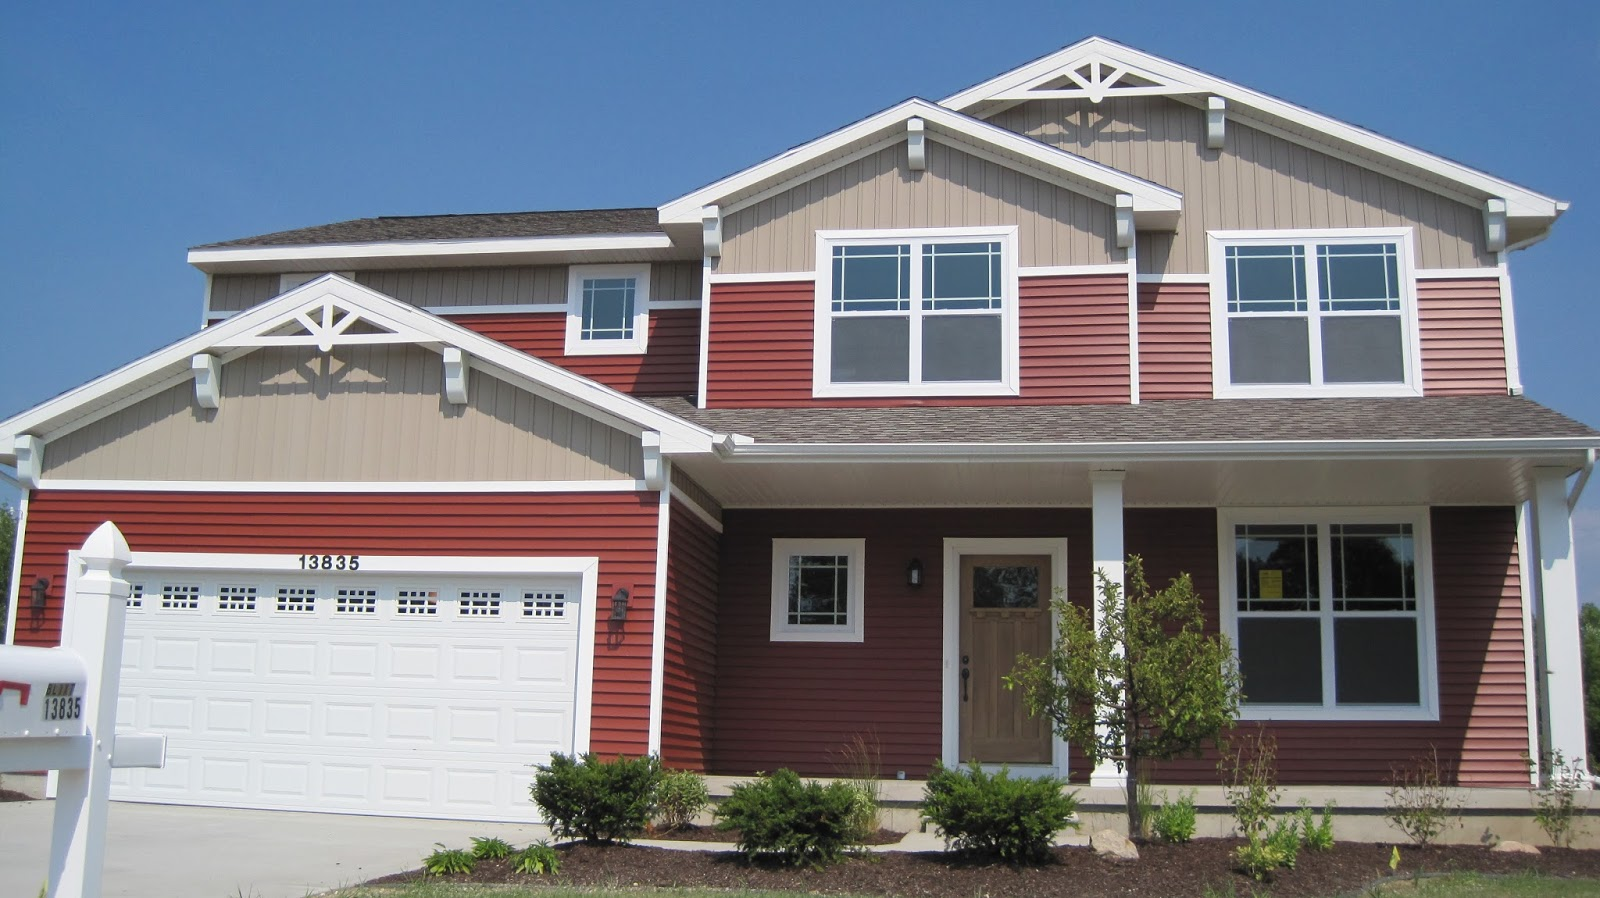 Red with White Trim and Siding House